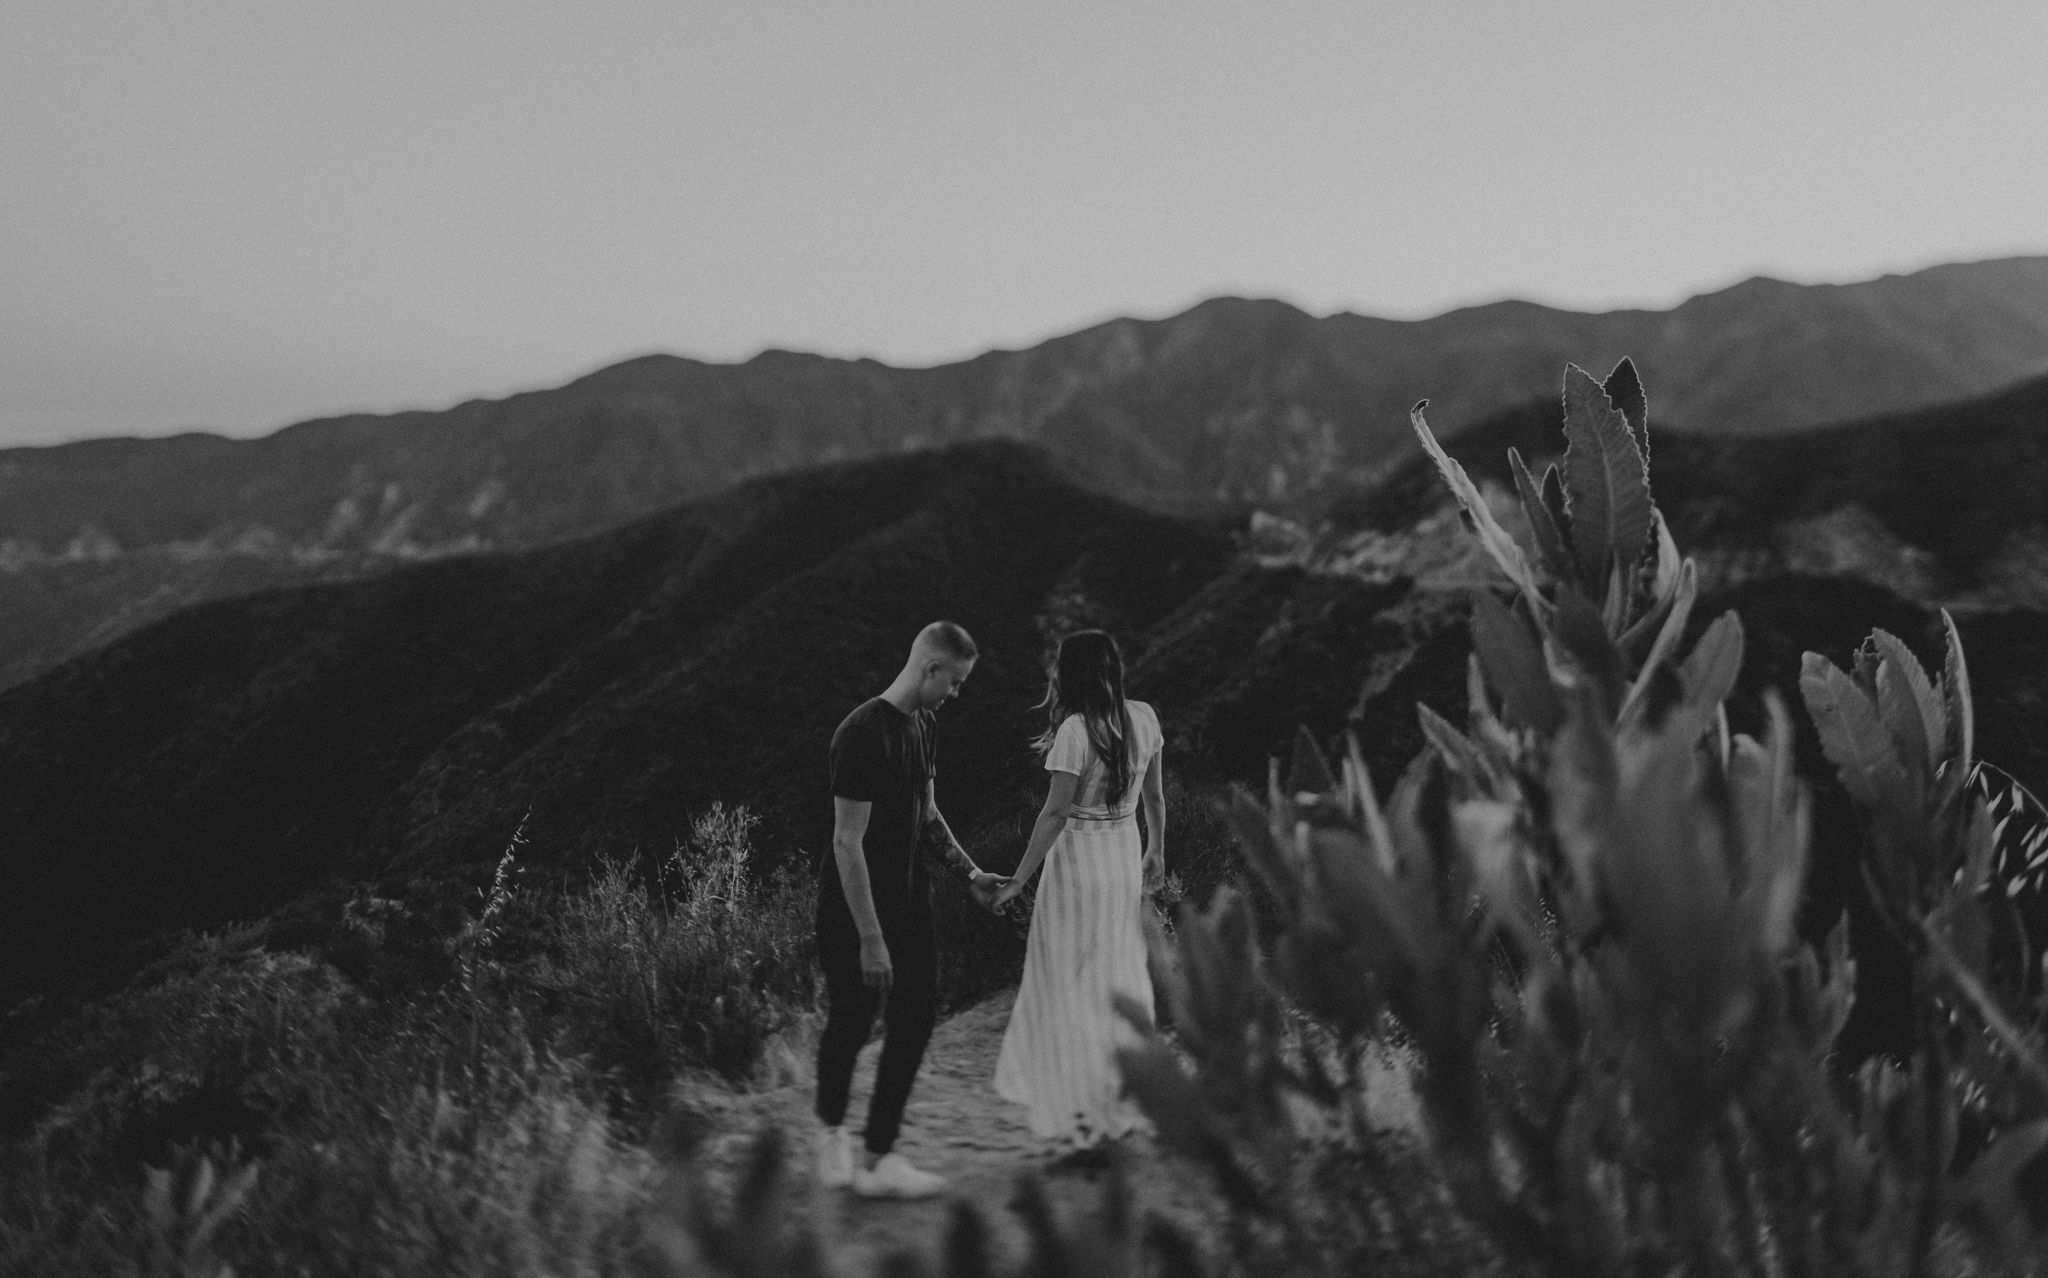 Isaiah + Taylor Photography - Los Angeles Forest Engagement Session - Laid back wedding photographer-040.jpg